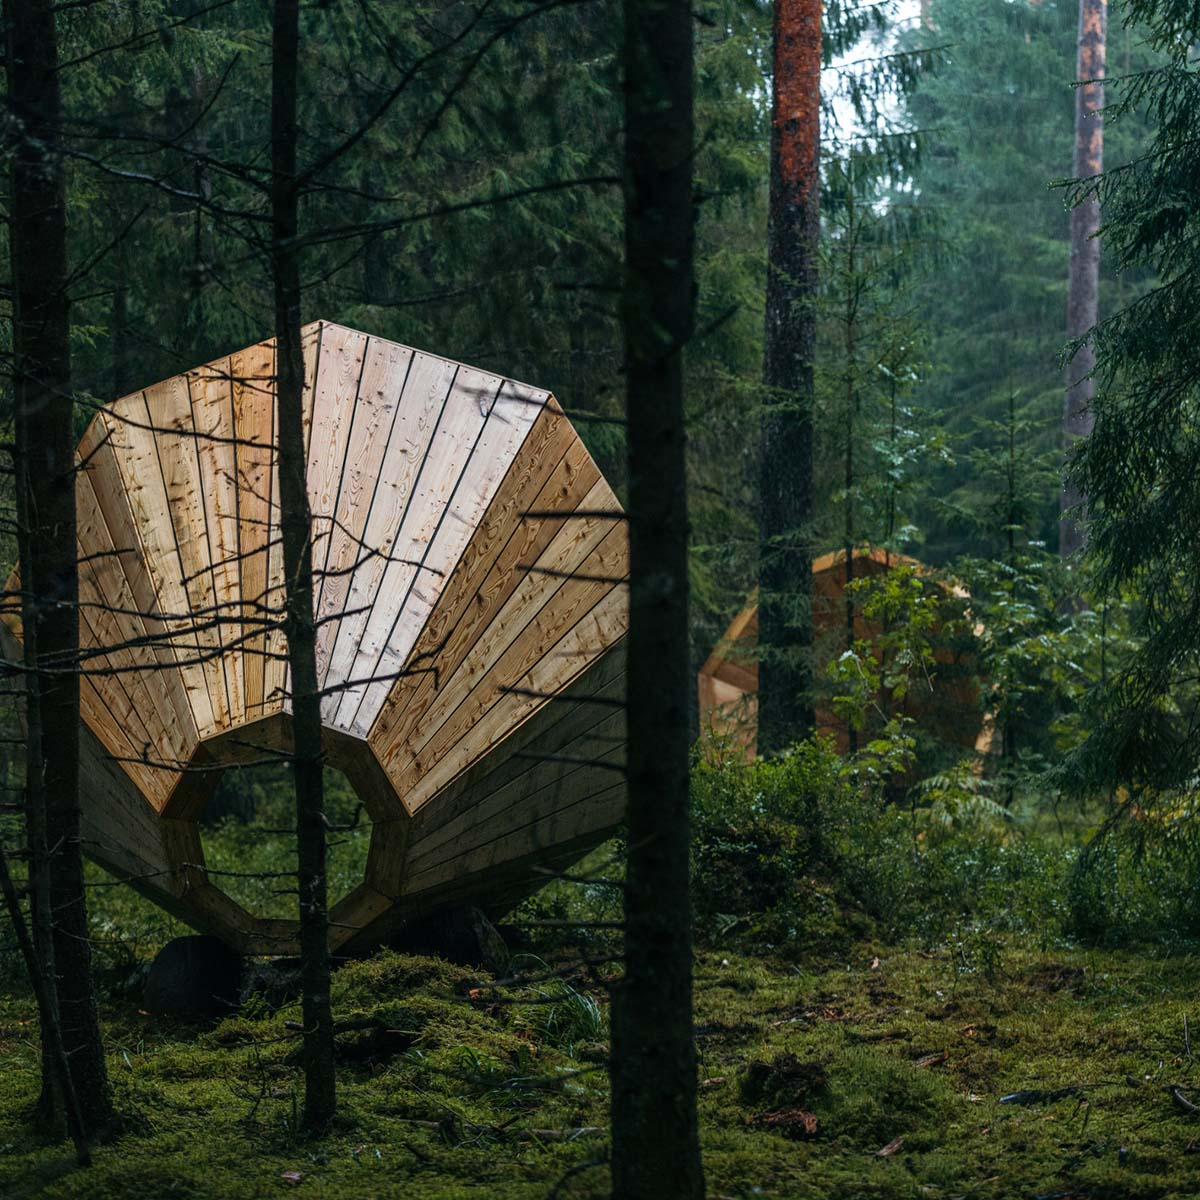 Gigantic Wooden Megaphone Installation at the Pähni Nature Centre in Estonia - 06